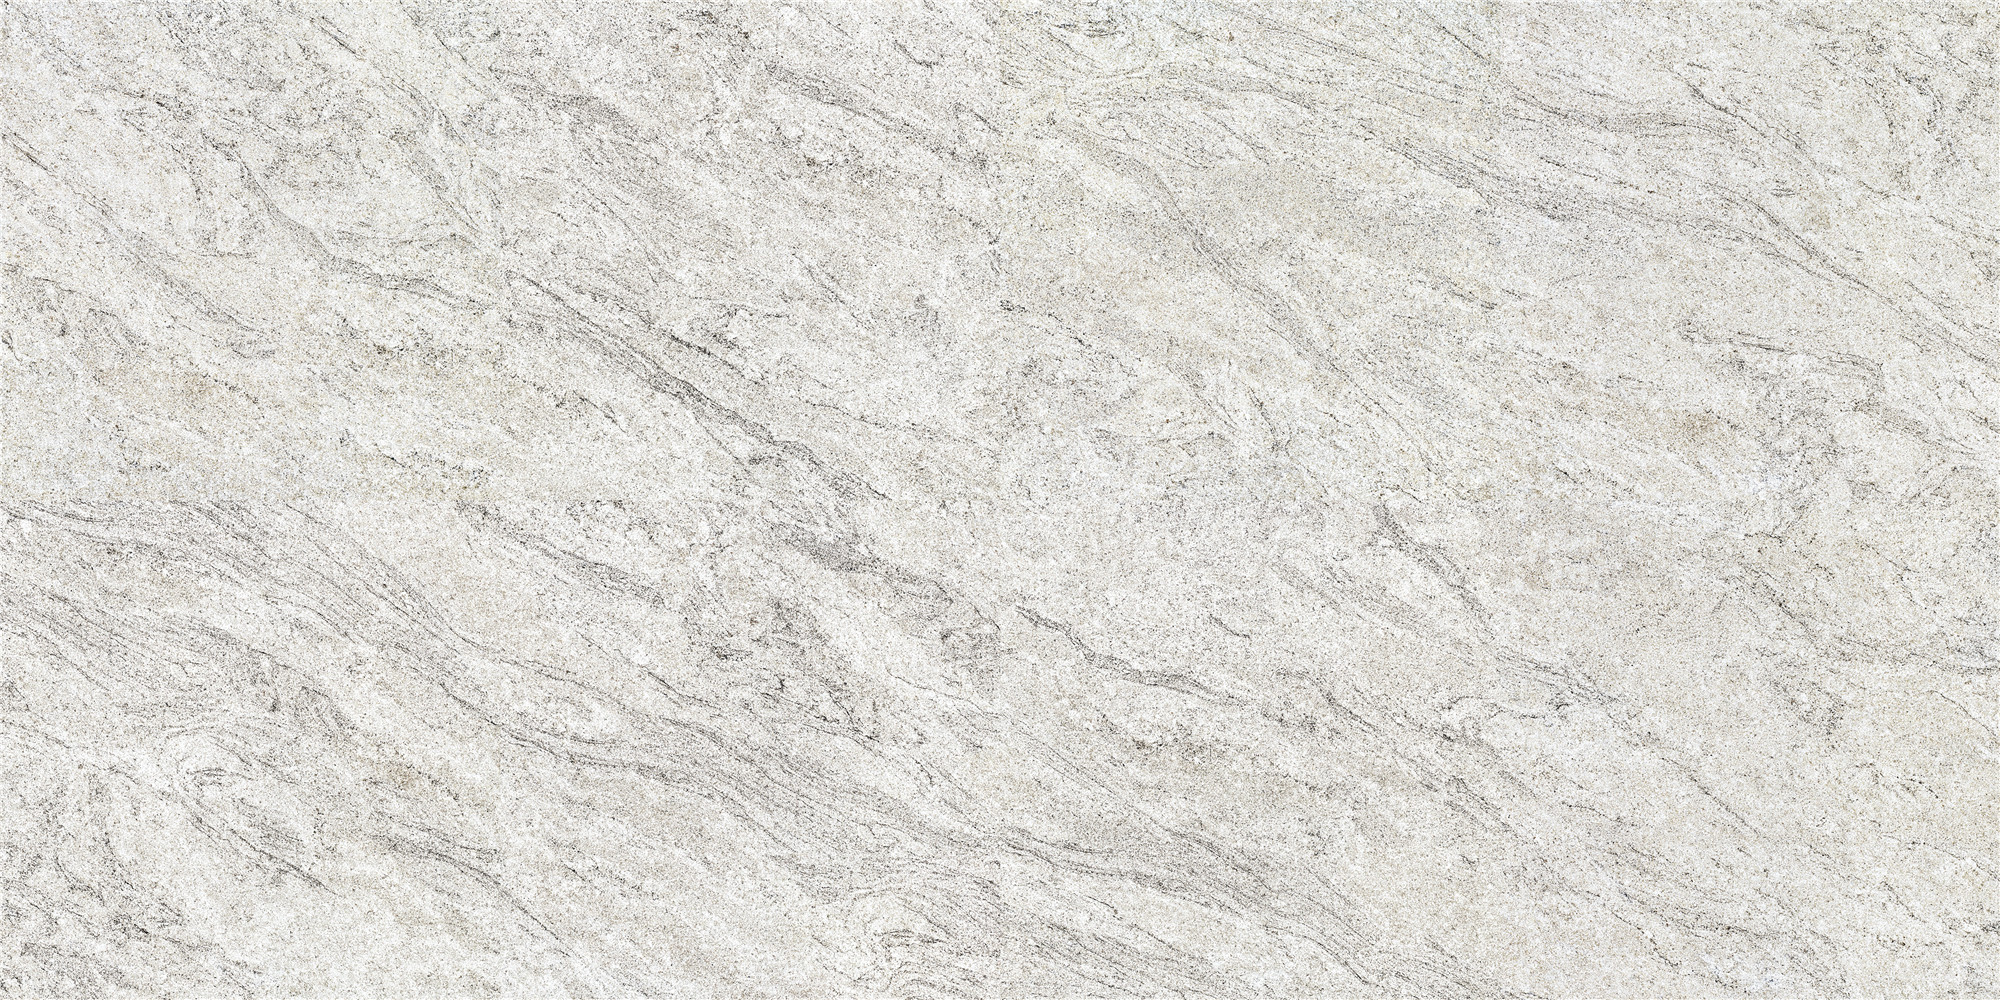 Supply Kashmir Granite White Marble Tiles Factory Quotes Oem